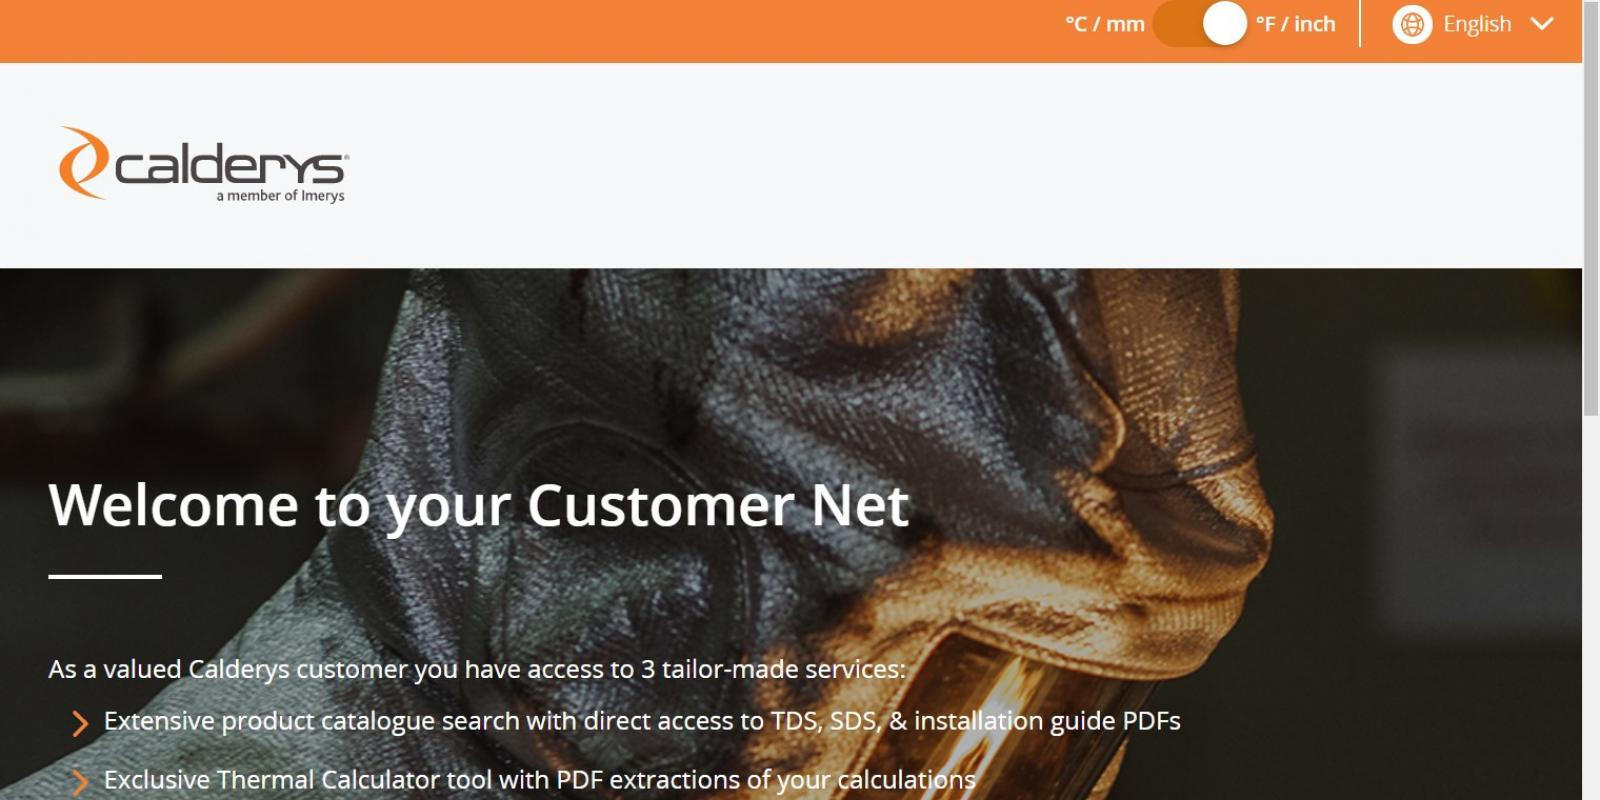 Calderys Customer Net launches US version